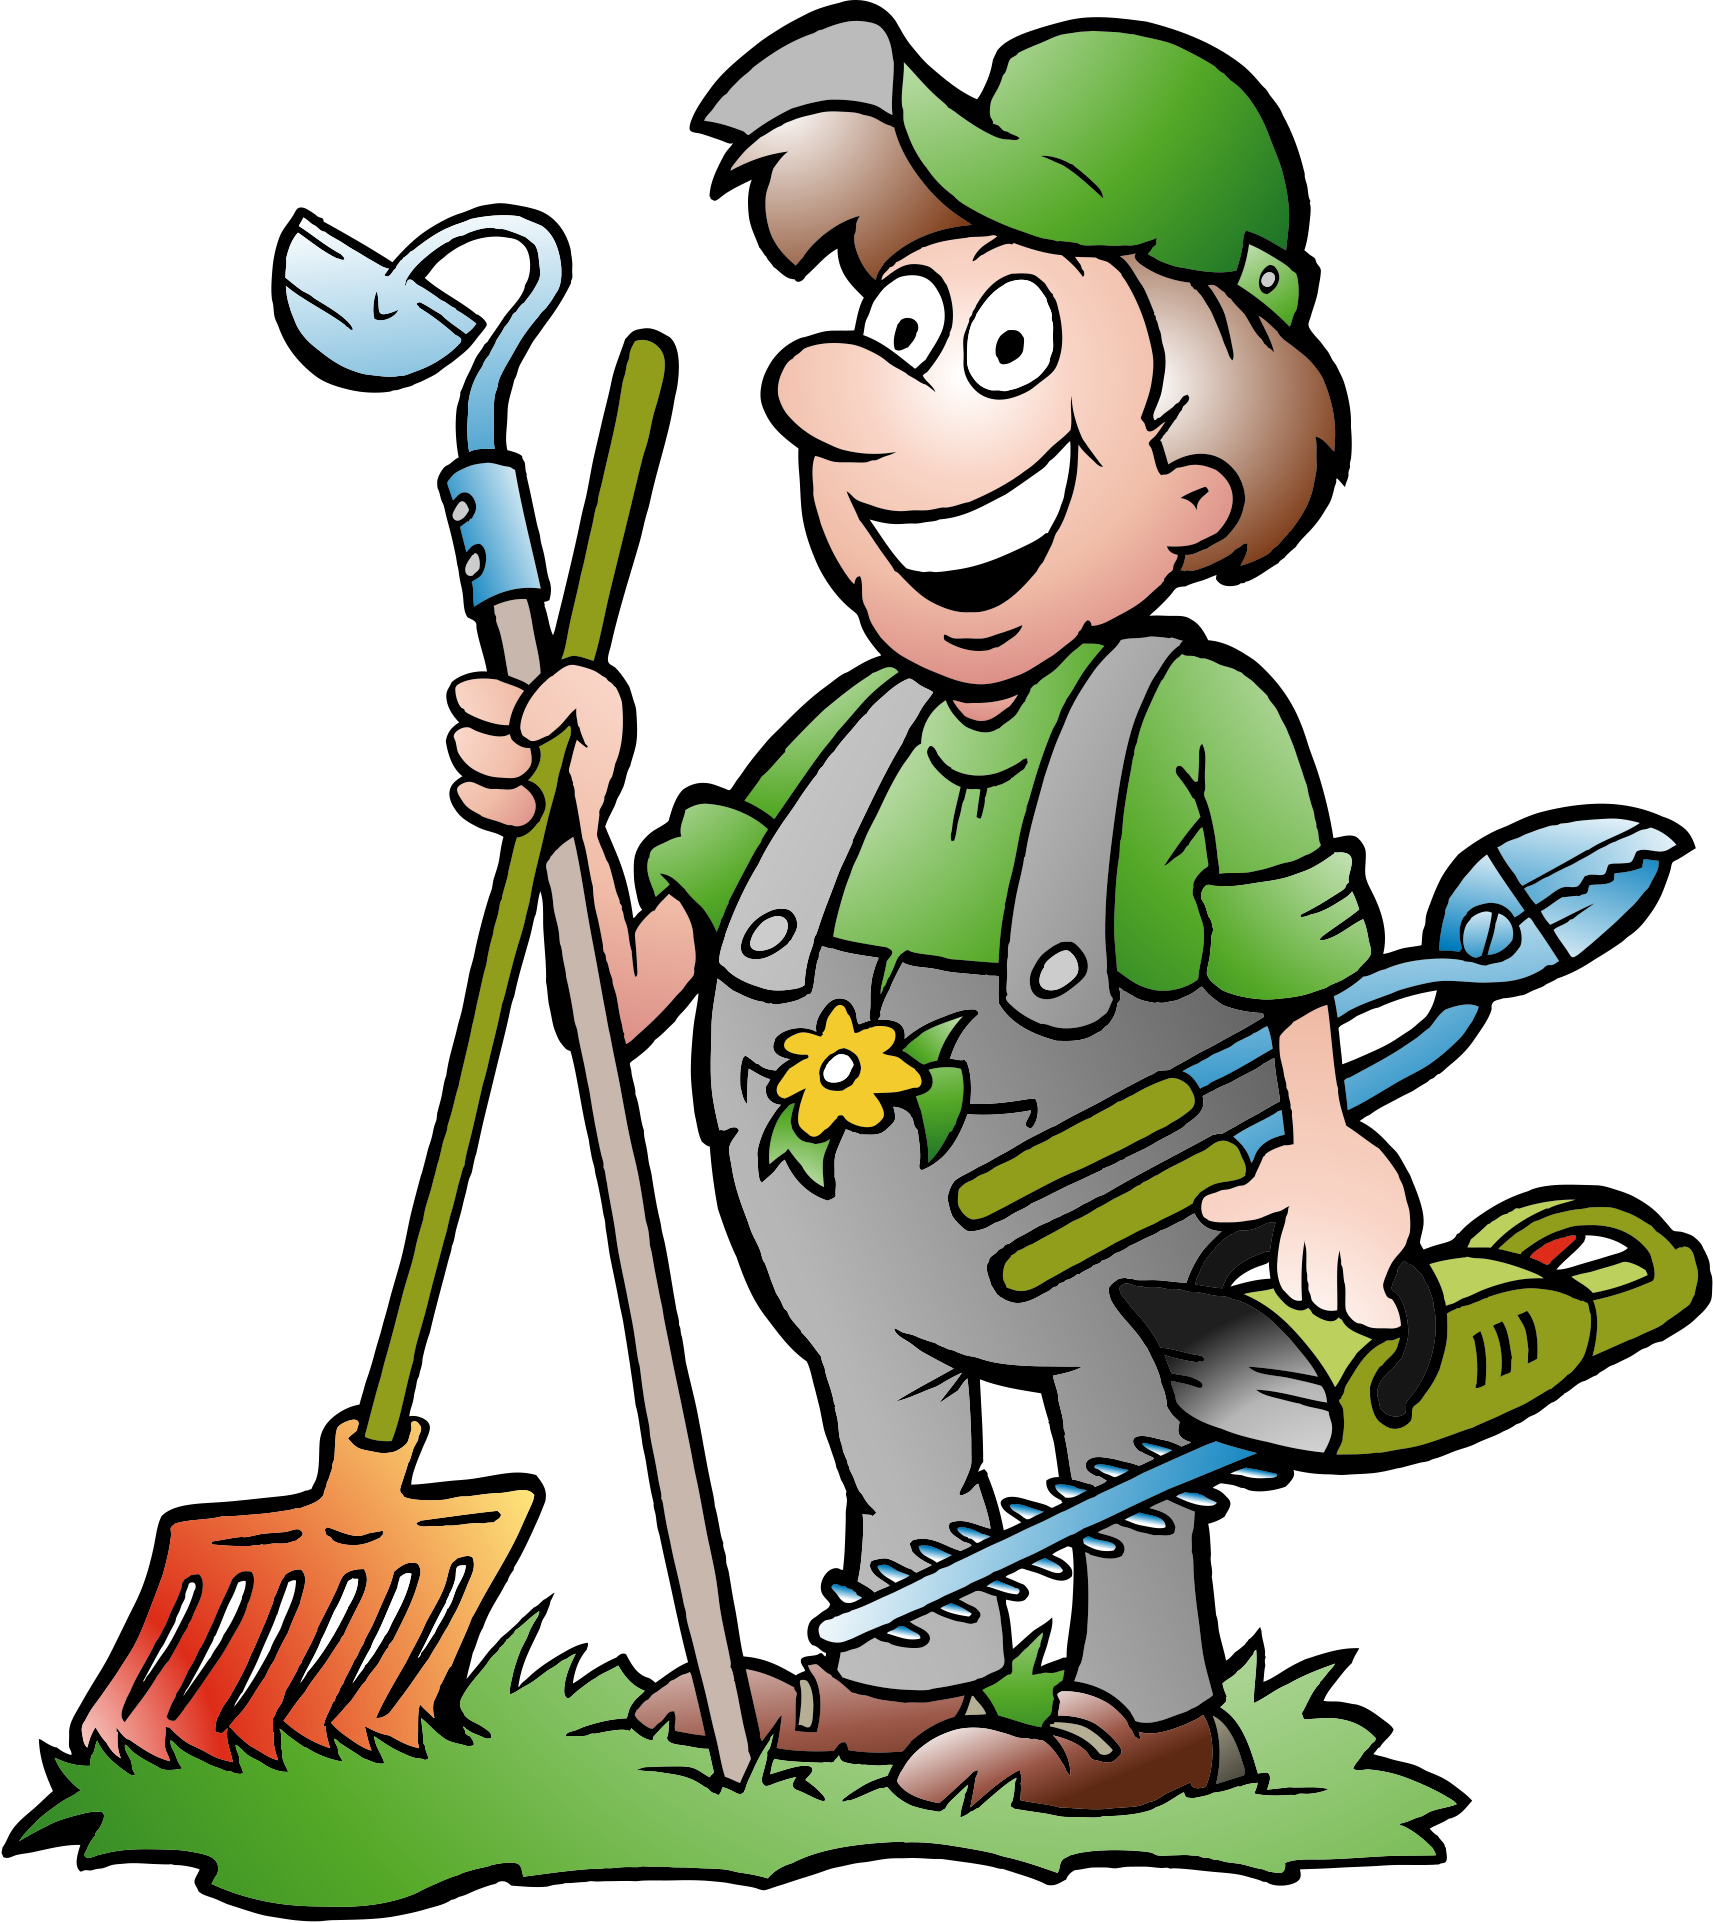 banner transparent library Landscape free on dumielauxepices. Lawn mower clipart yard work.